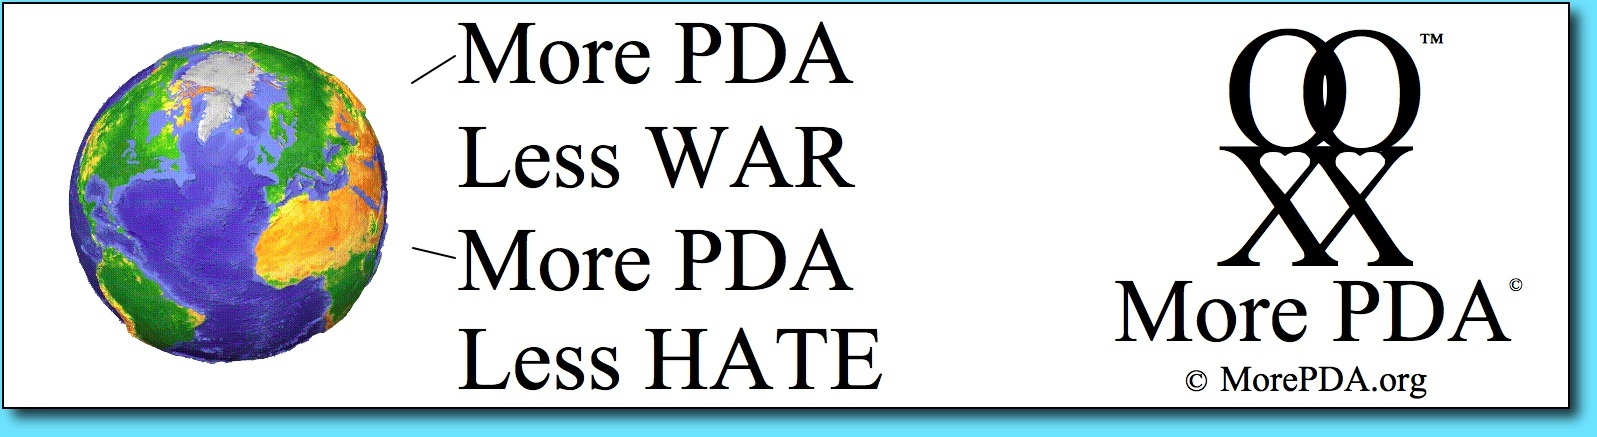 More PDA Bumper Sticker